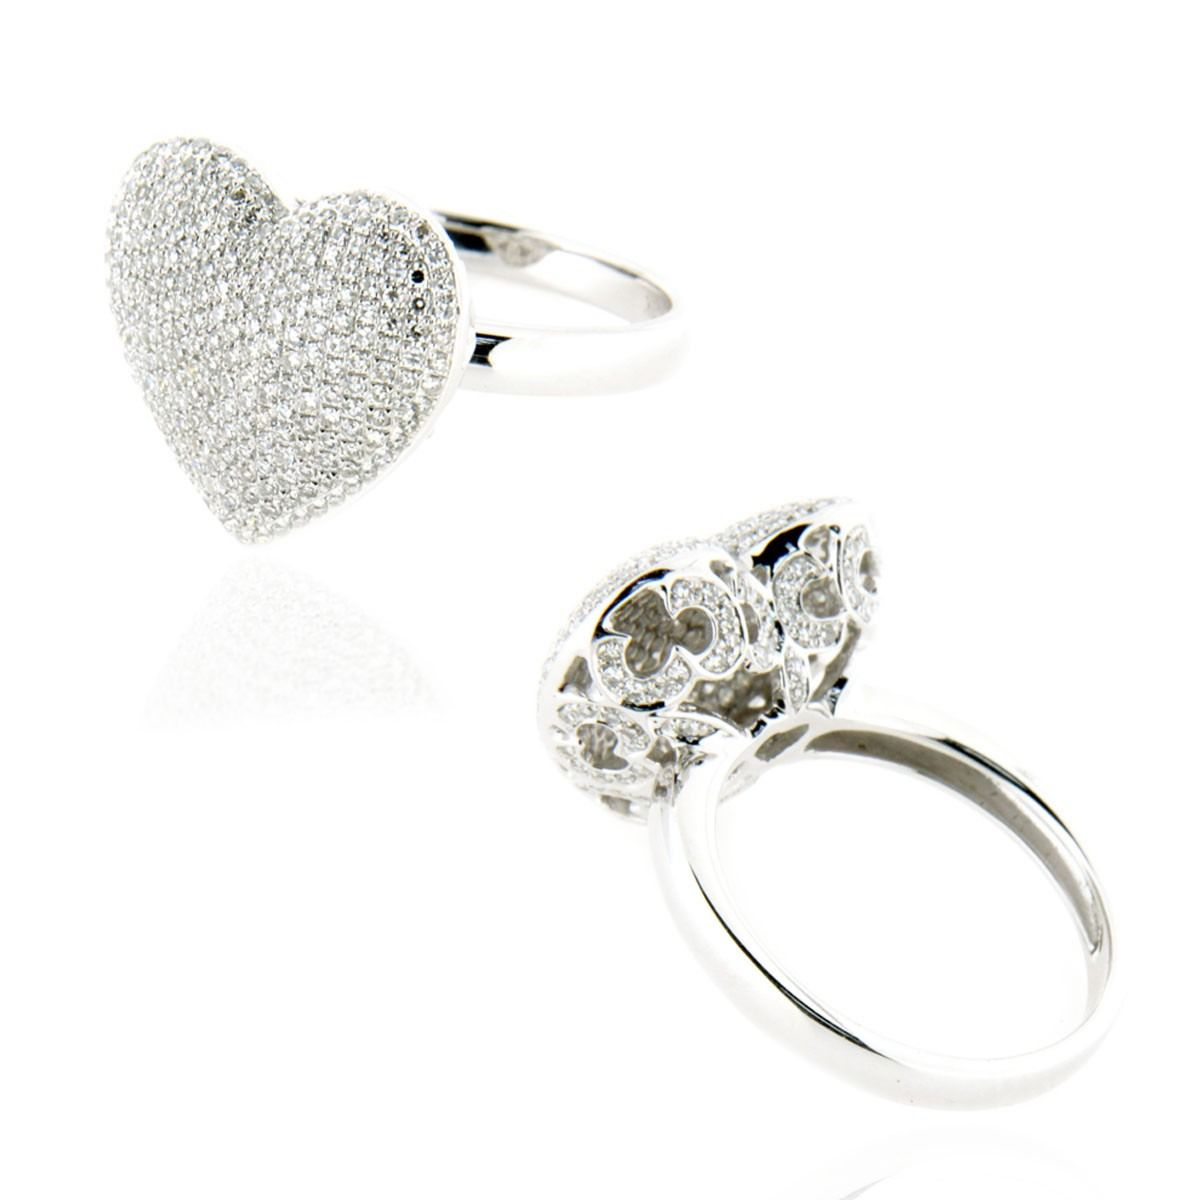 We've heard that no beauty shines brighter than a good heart.. but we're guessing that was said before Zayn Jewels Diamond Heart Ring!  Shop >http://bit.ly/2u9kRZm?utm_campaign=coschedule&utm_source=pinterest&utm_medium=Jewelstreet